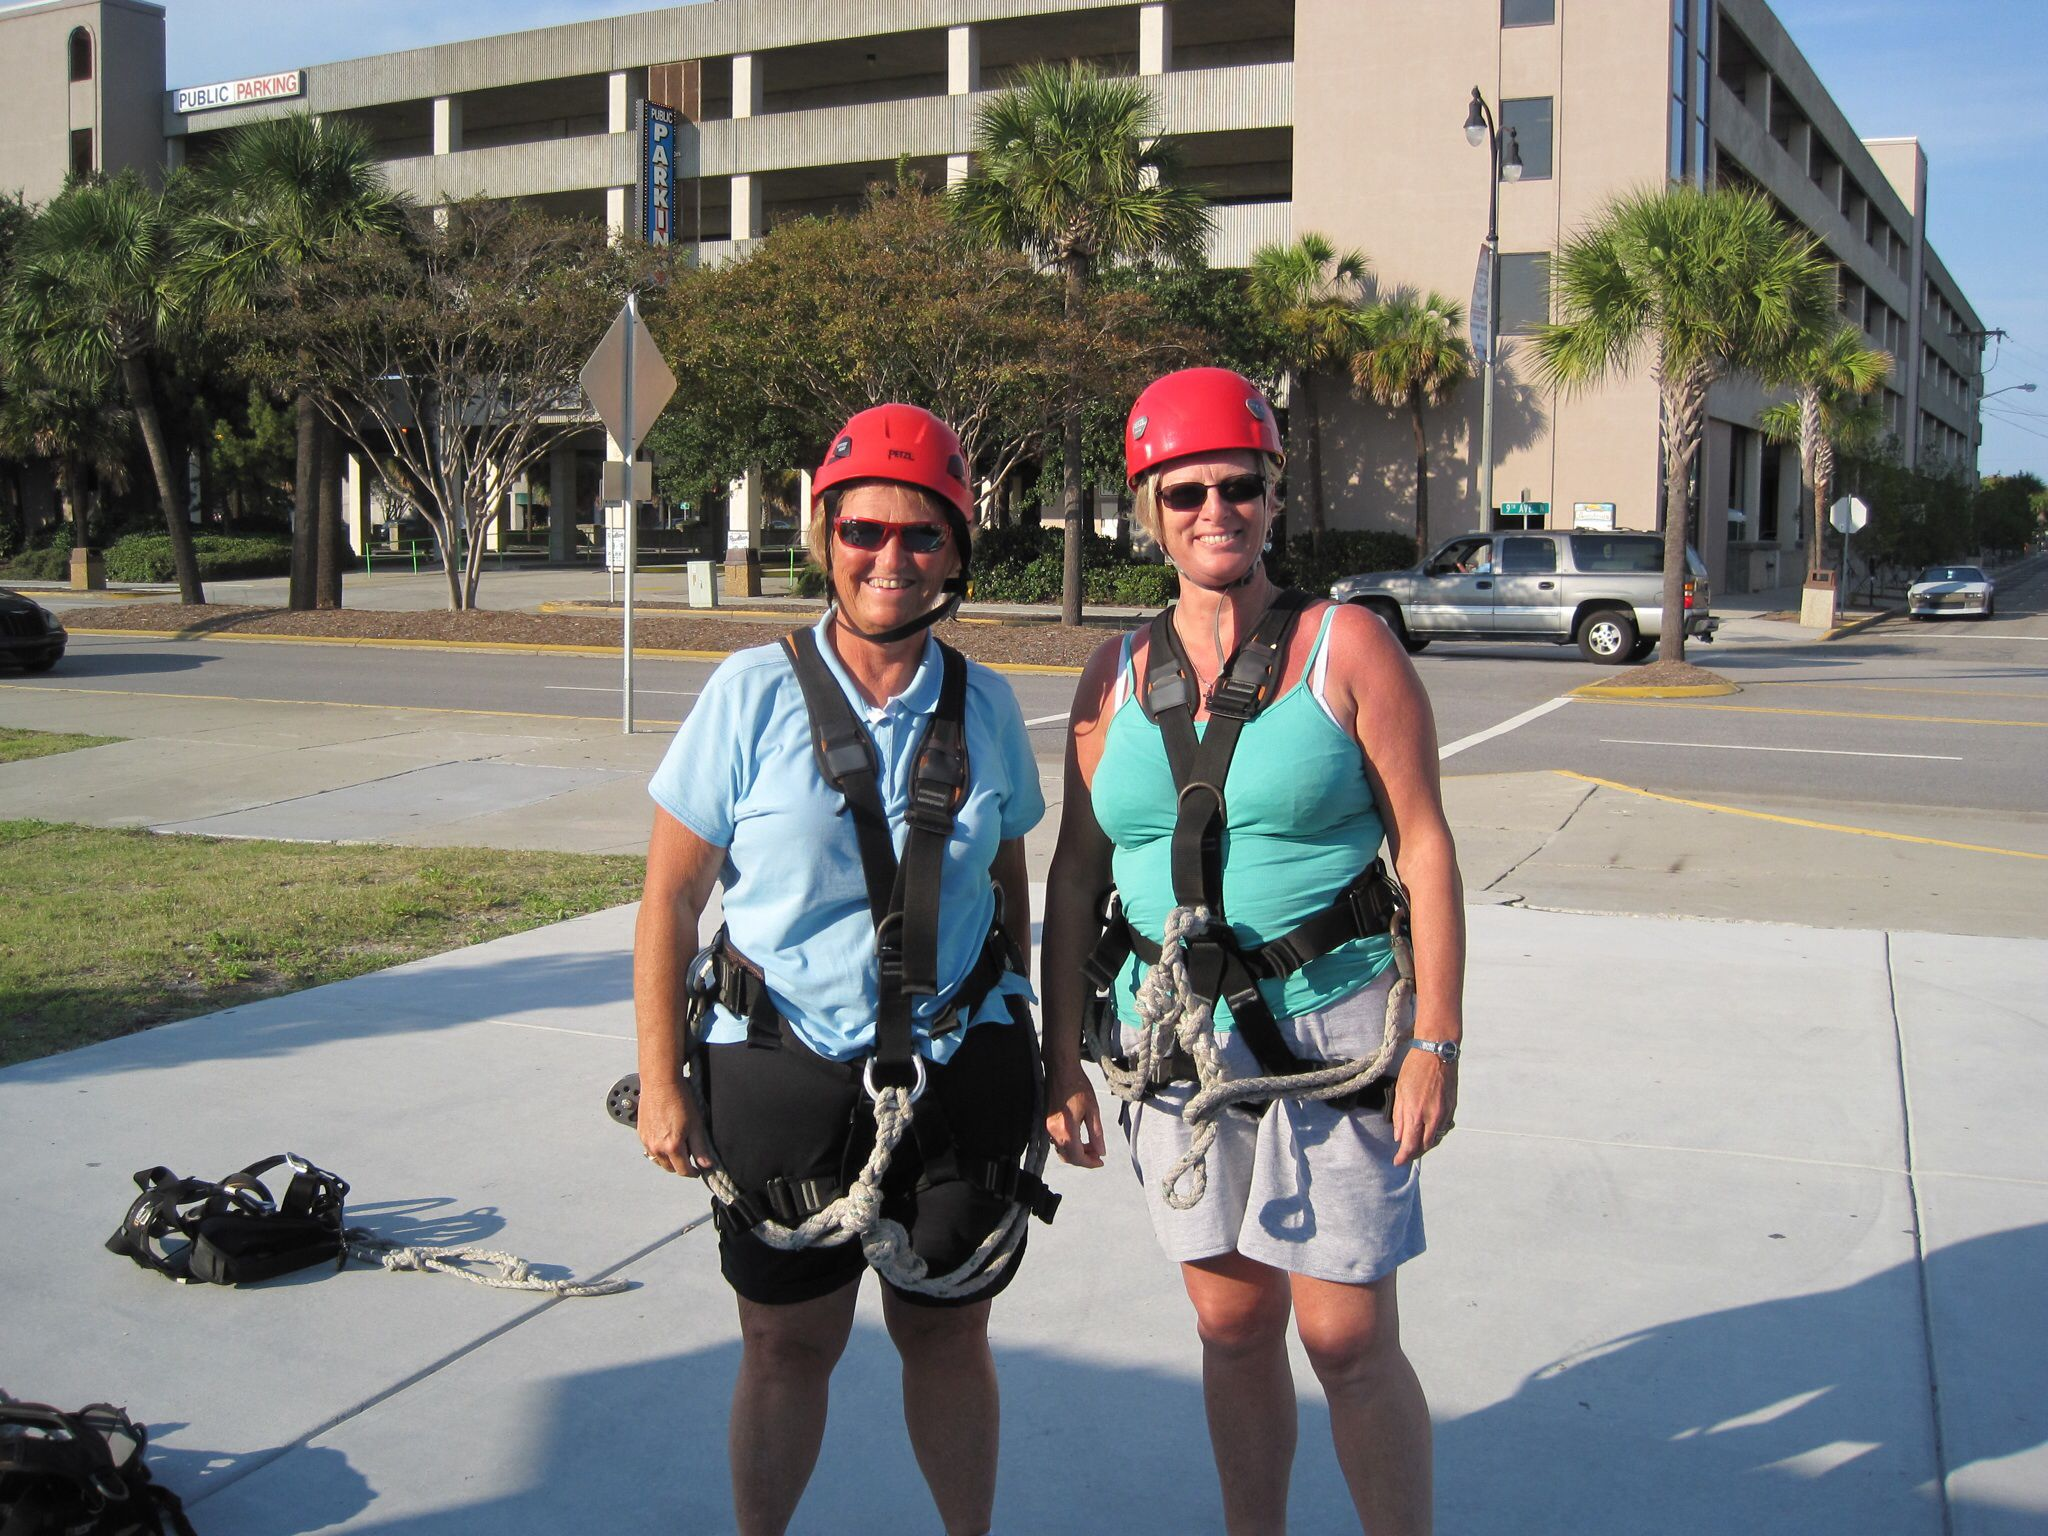 Ready for the zip line! Great fun Myrtle beach trip